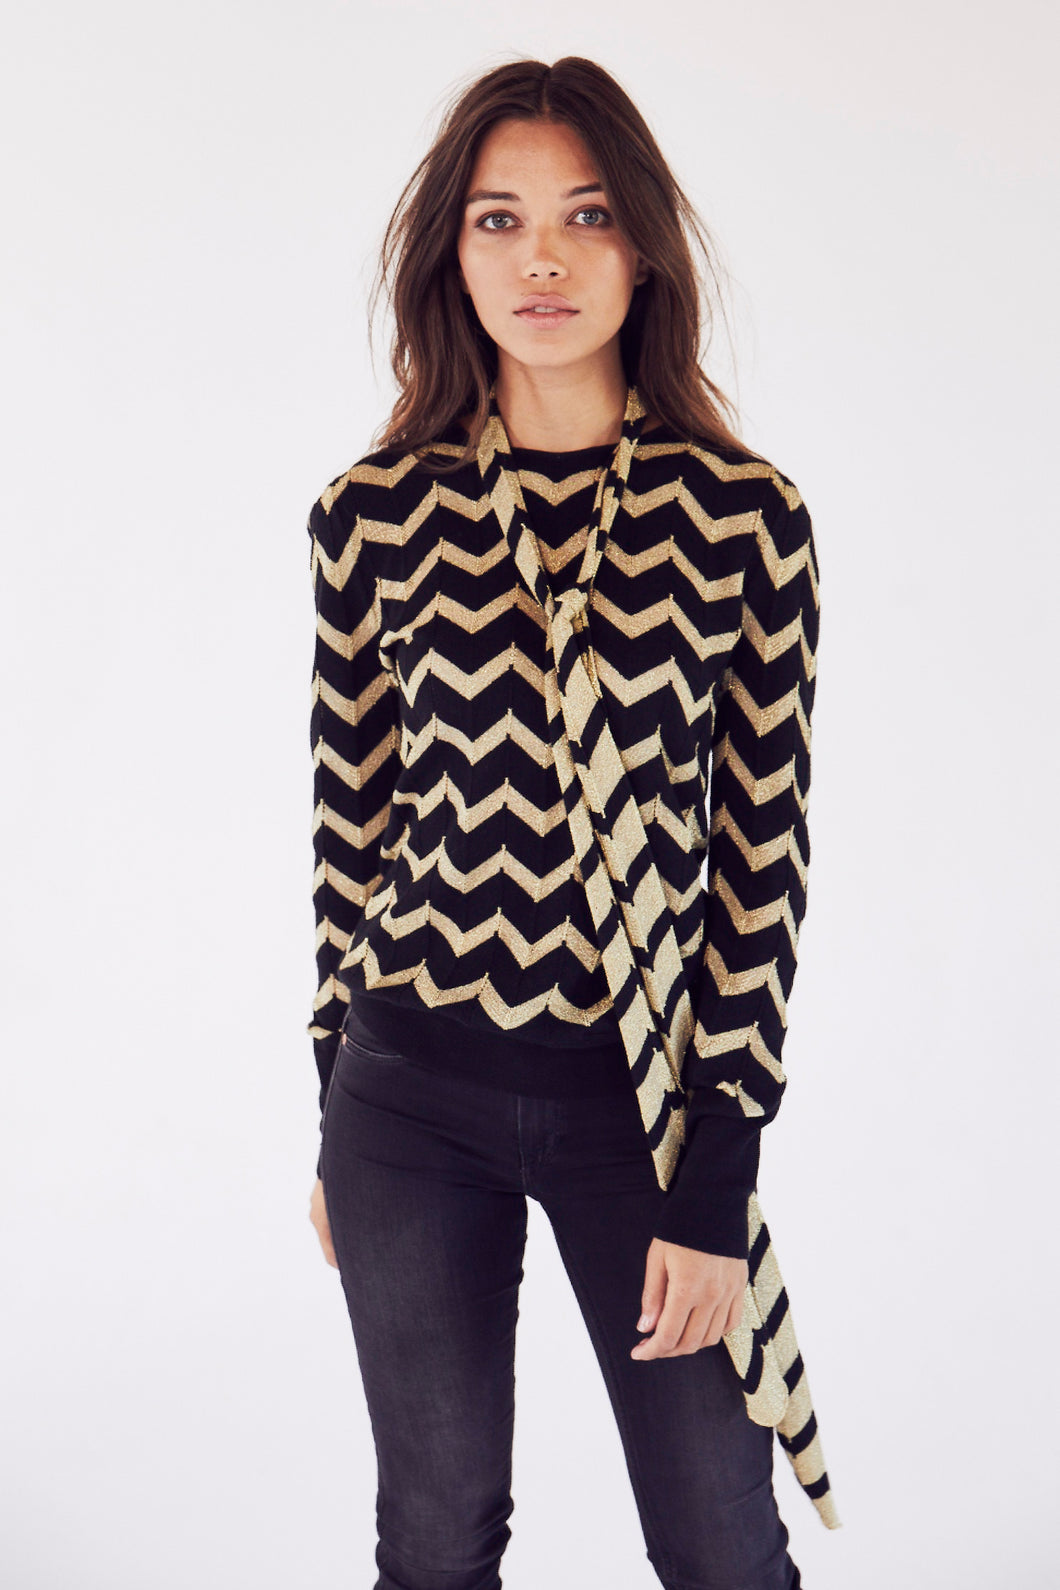 Lucille in Black and Gold Chevron